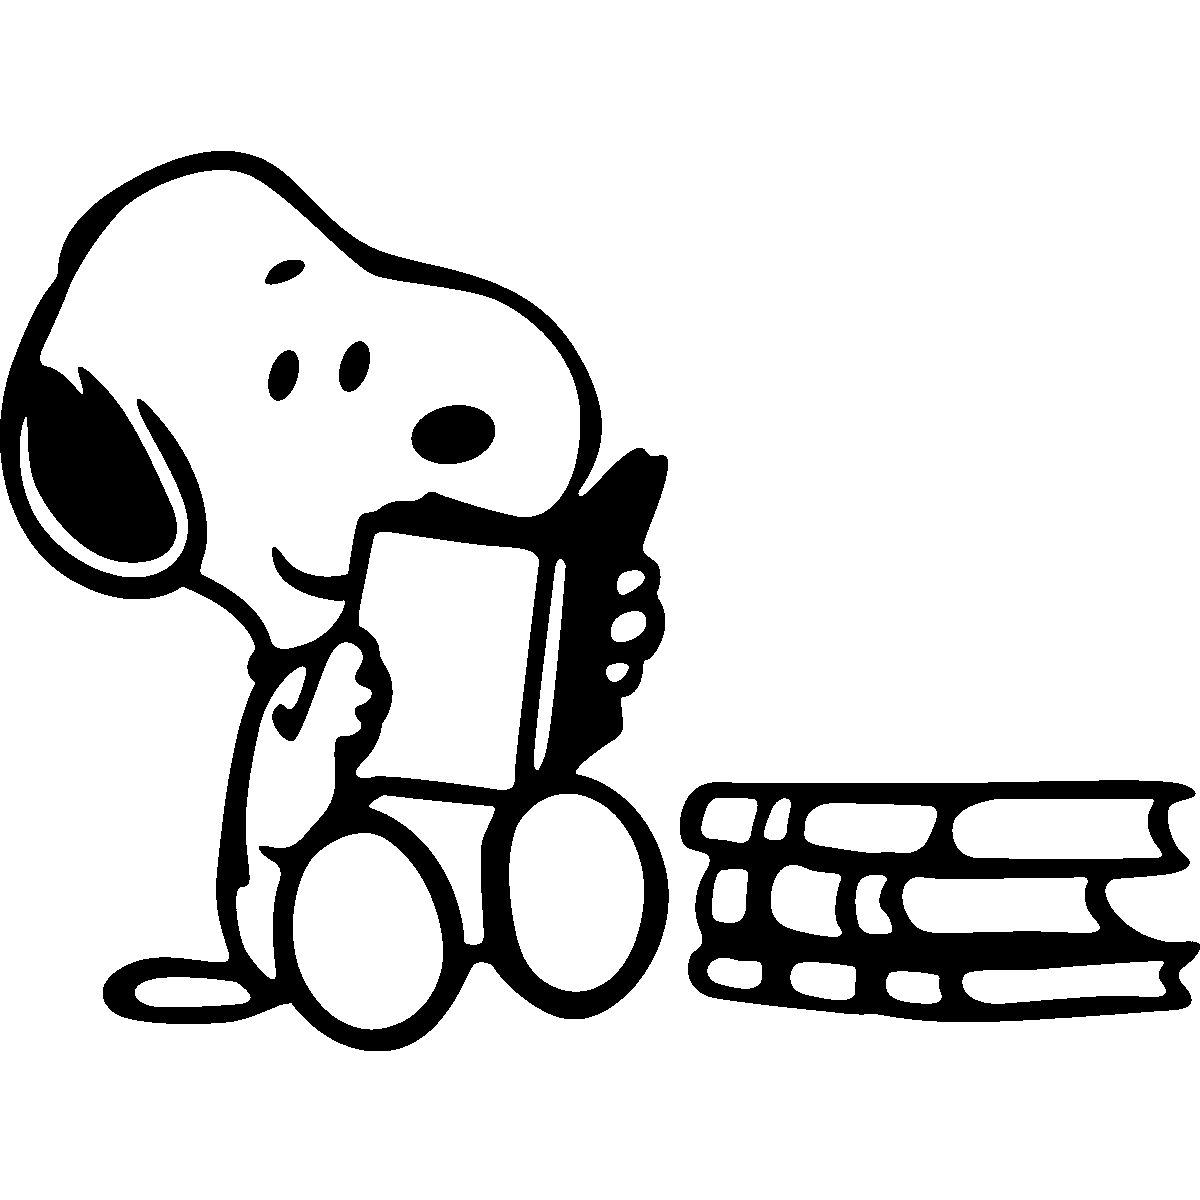 Halloween snoopy clipart clip art black and white download Snoopy Reading <3 | Books Belong to Their Readers | Pinterest ... clip art black and white download